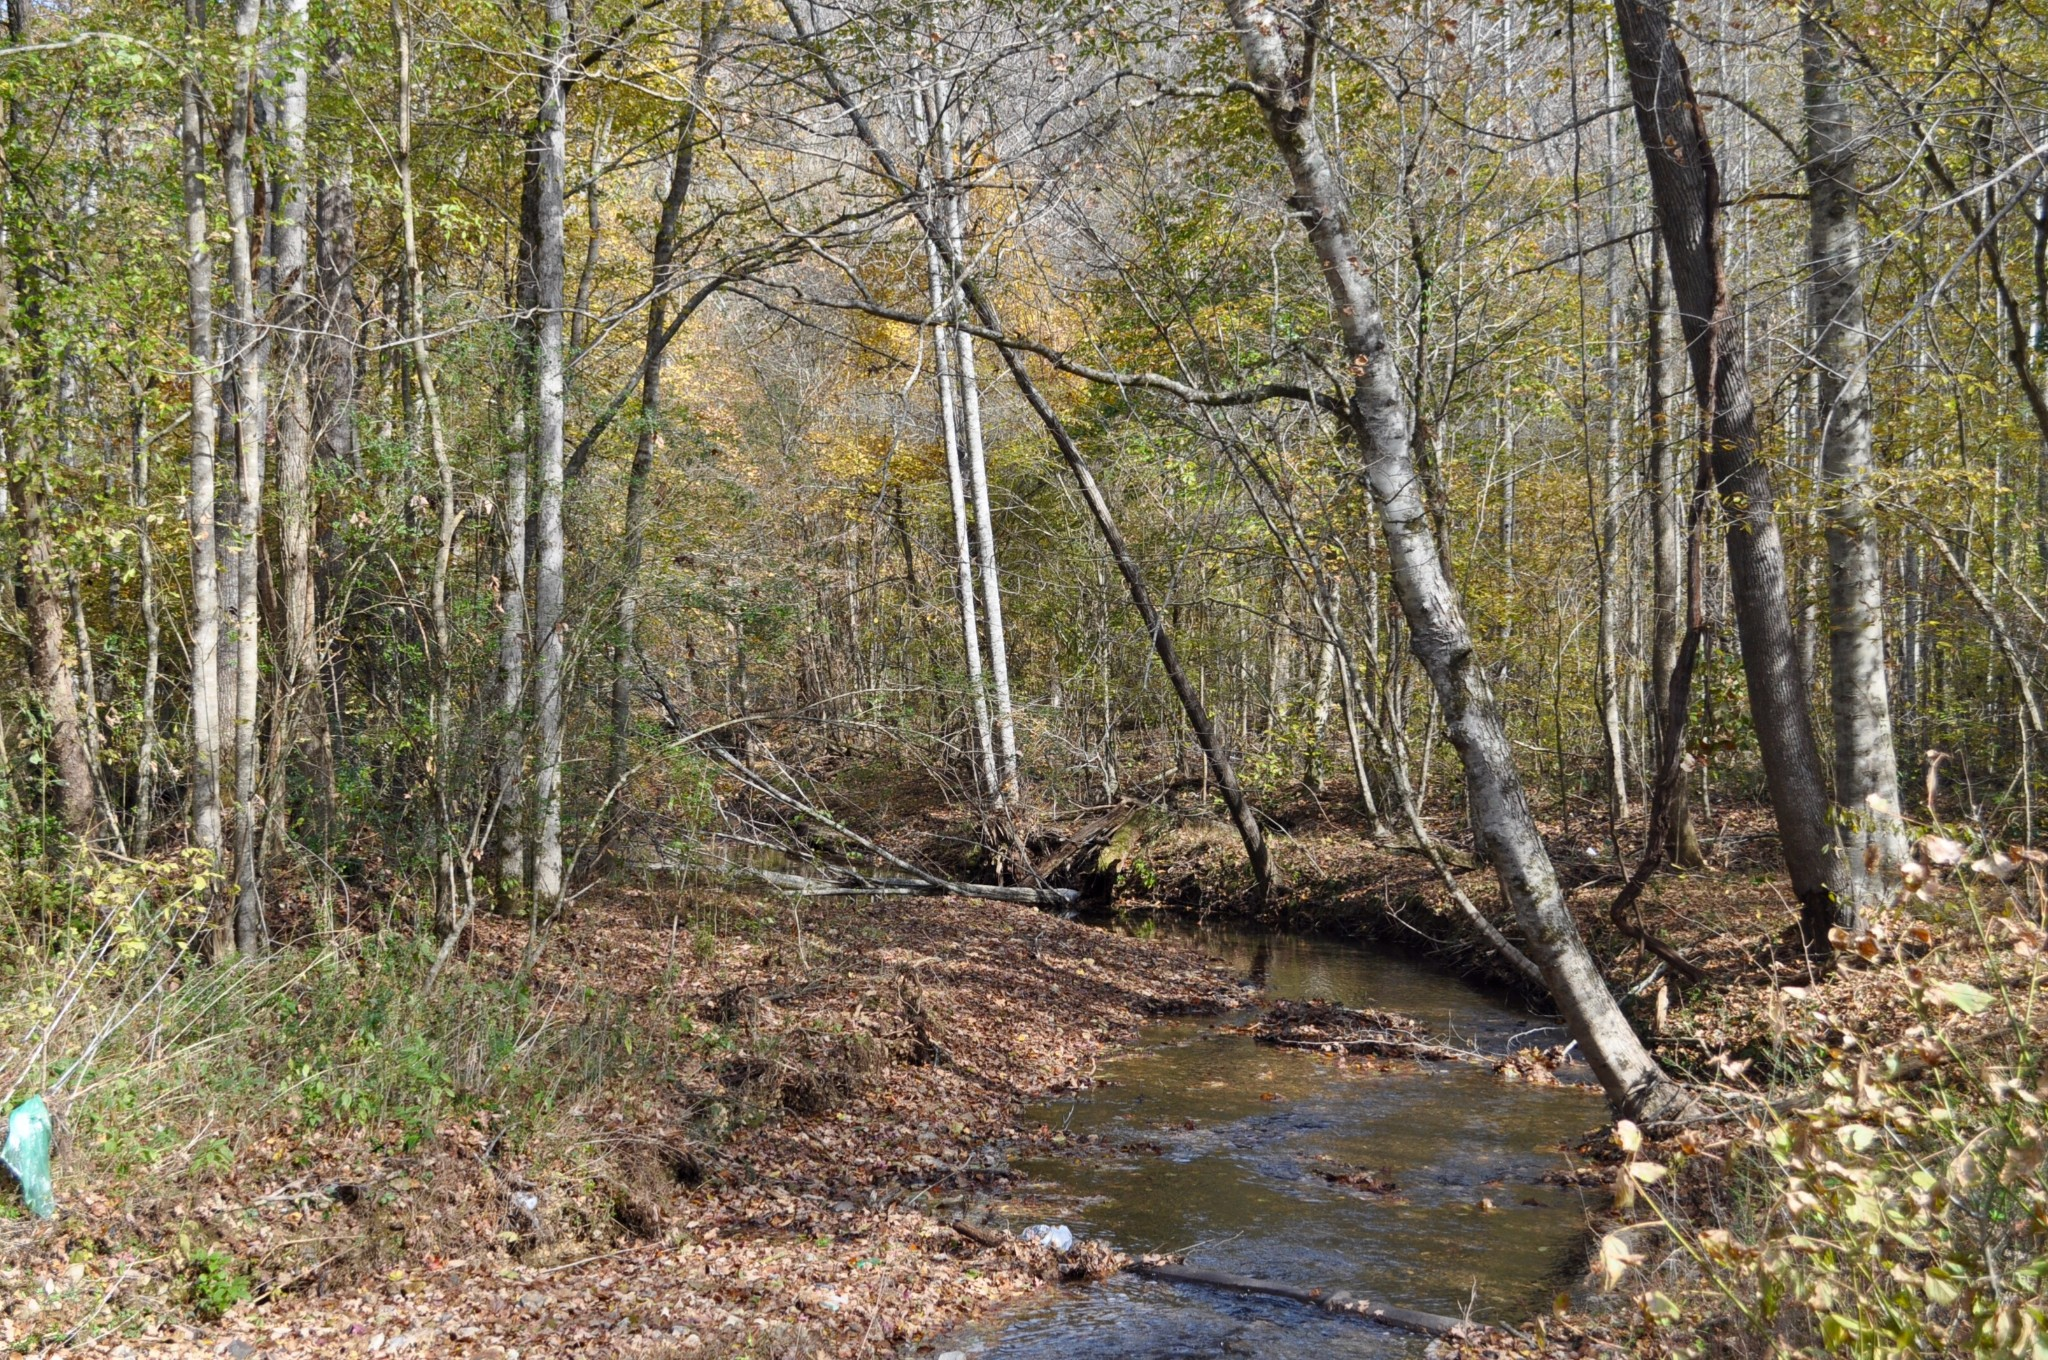 0 Teal Hollow , Kelso, TN 37348 - Kelso, TN real estate listing